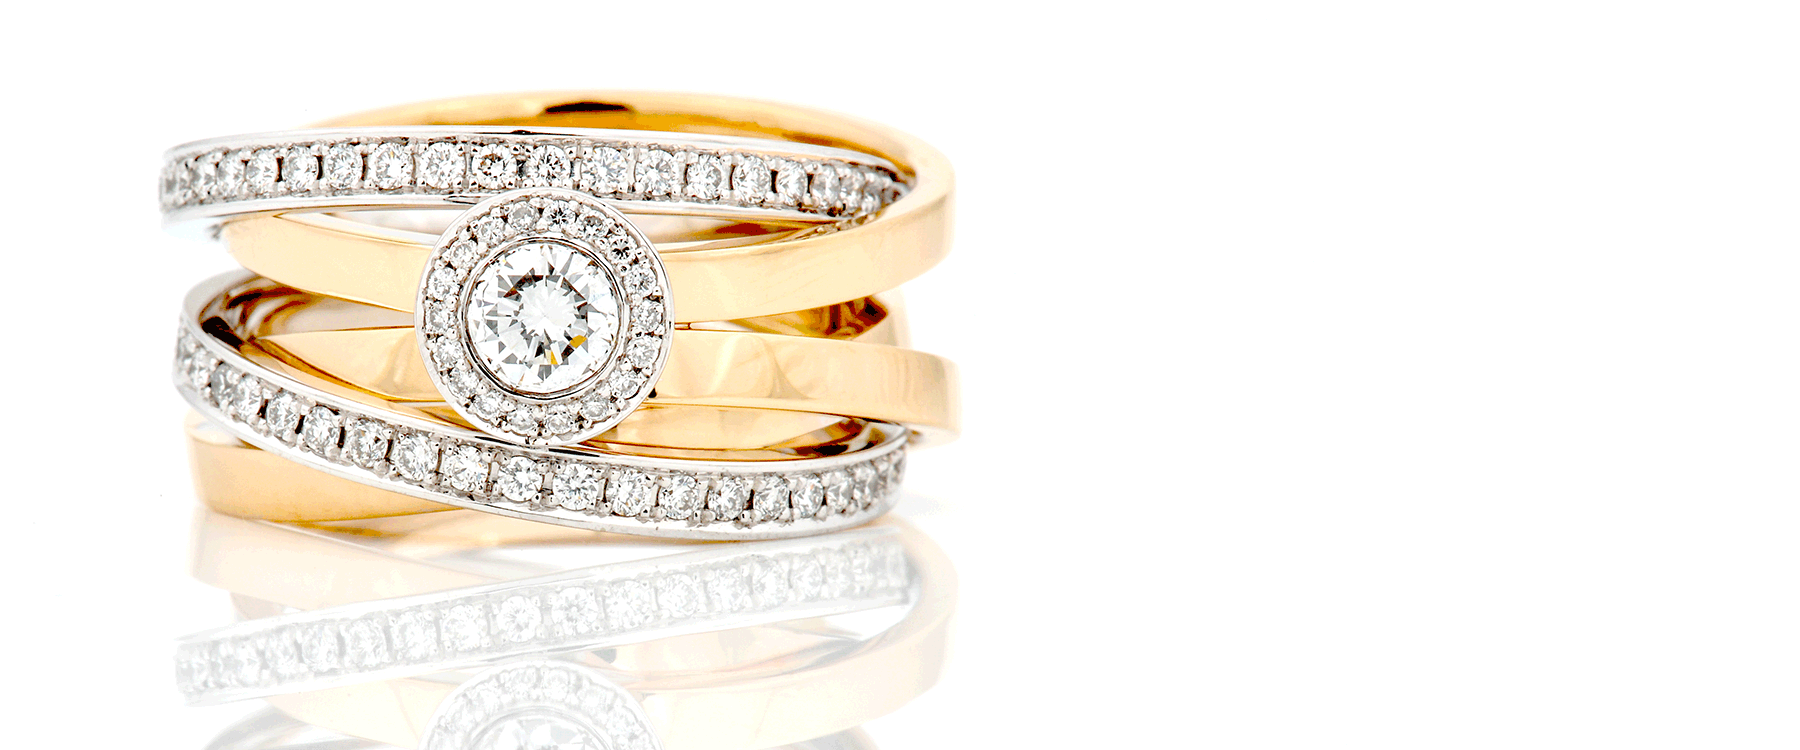 A beautiful bespoke gold and diamond ring made by Christopher Evans Goldsmiths